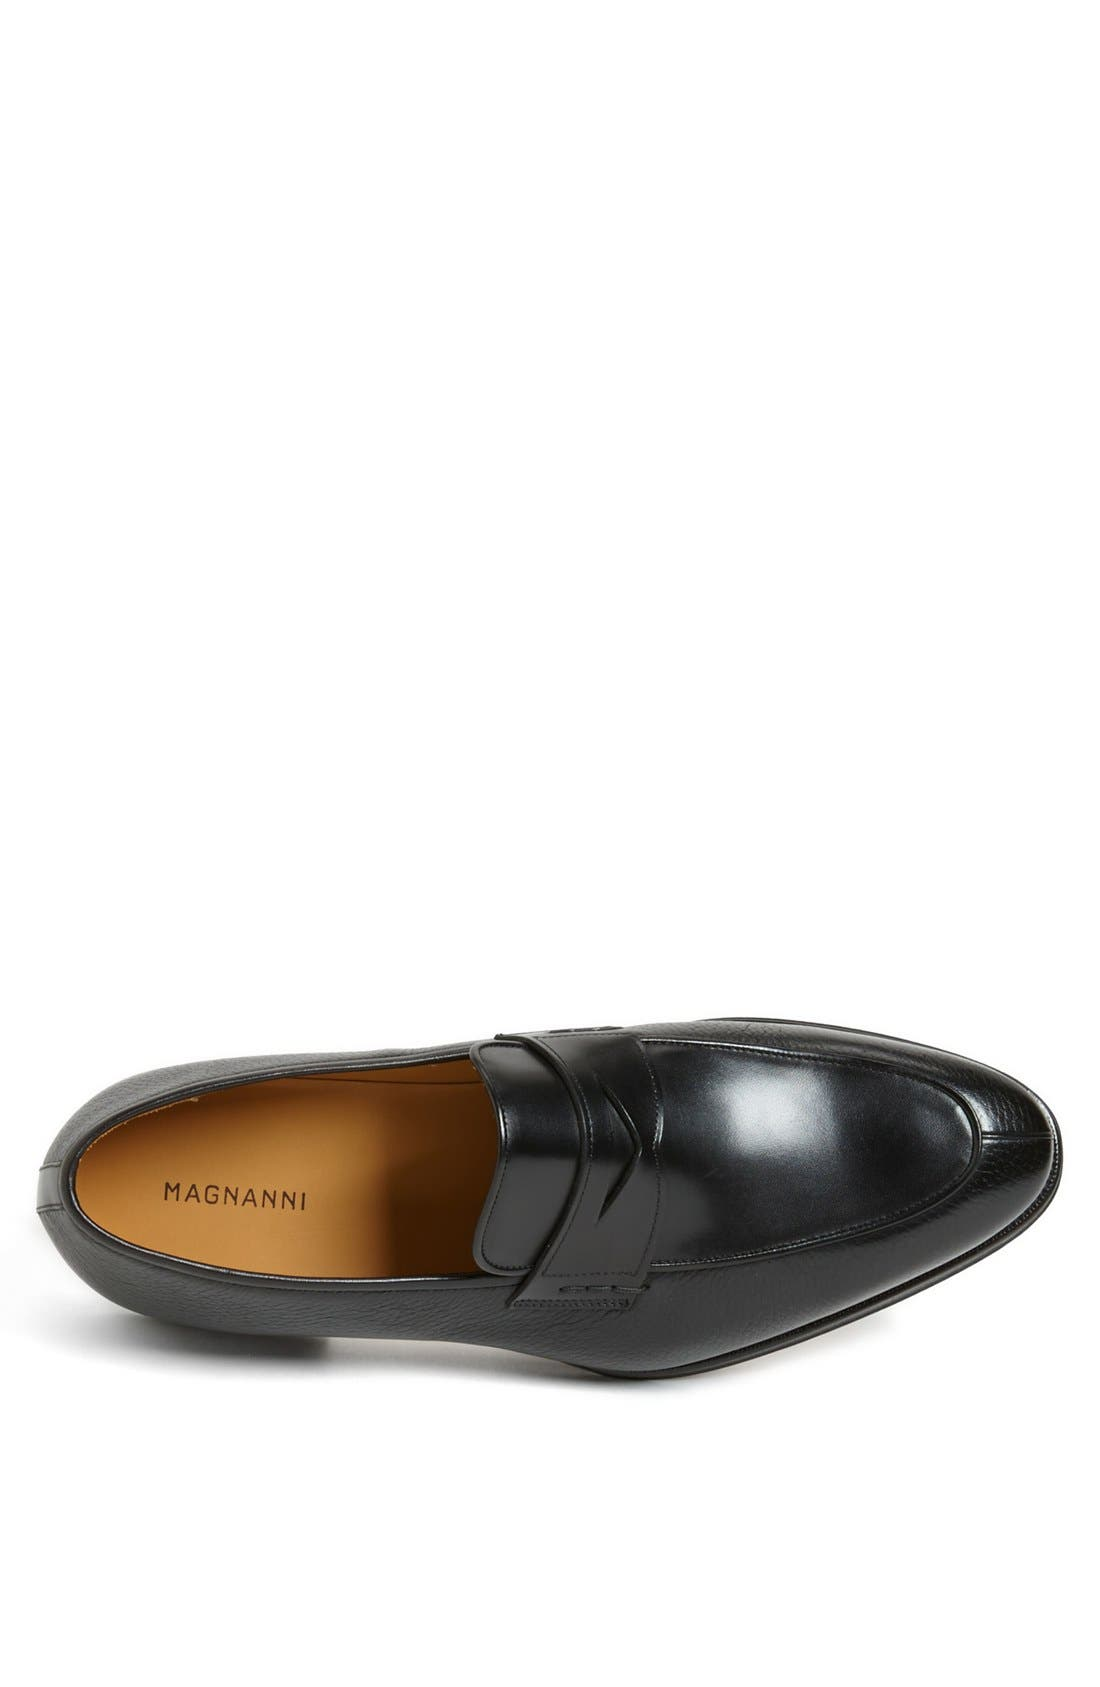 Alternate Image 3  - Magnanni 'Emilio' Penny Loafer